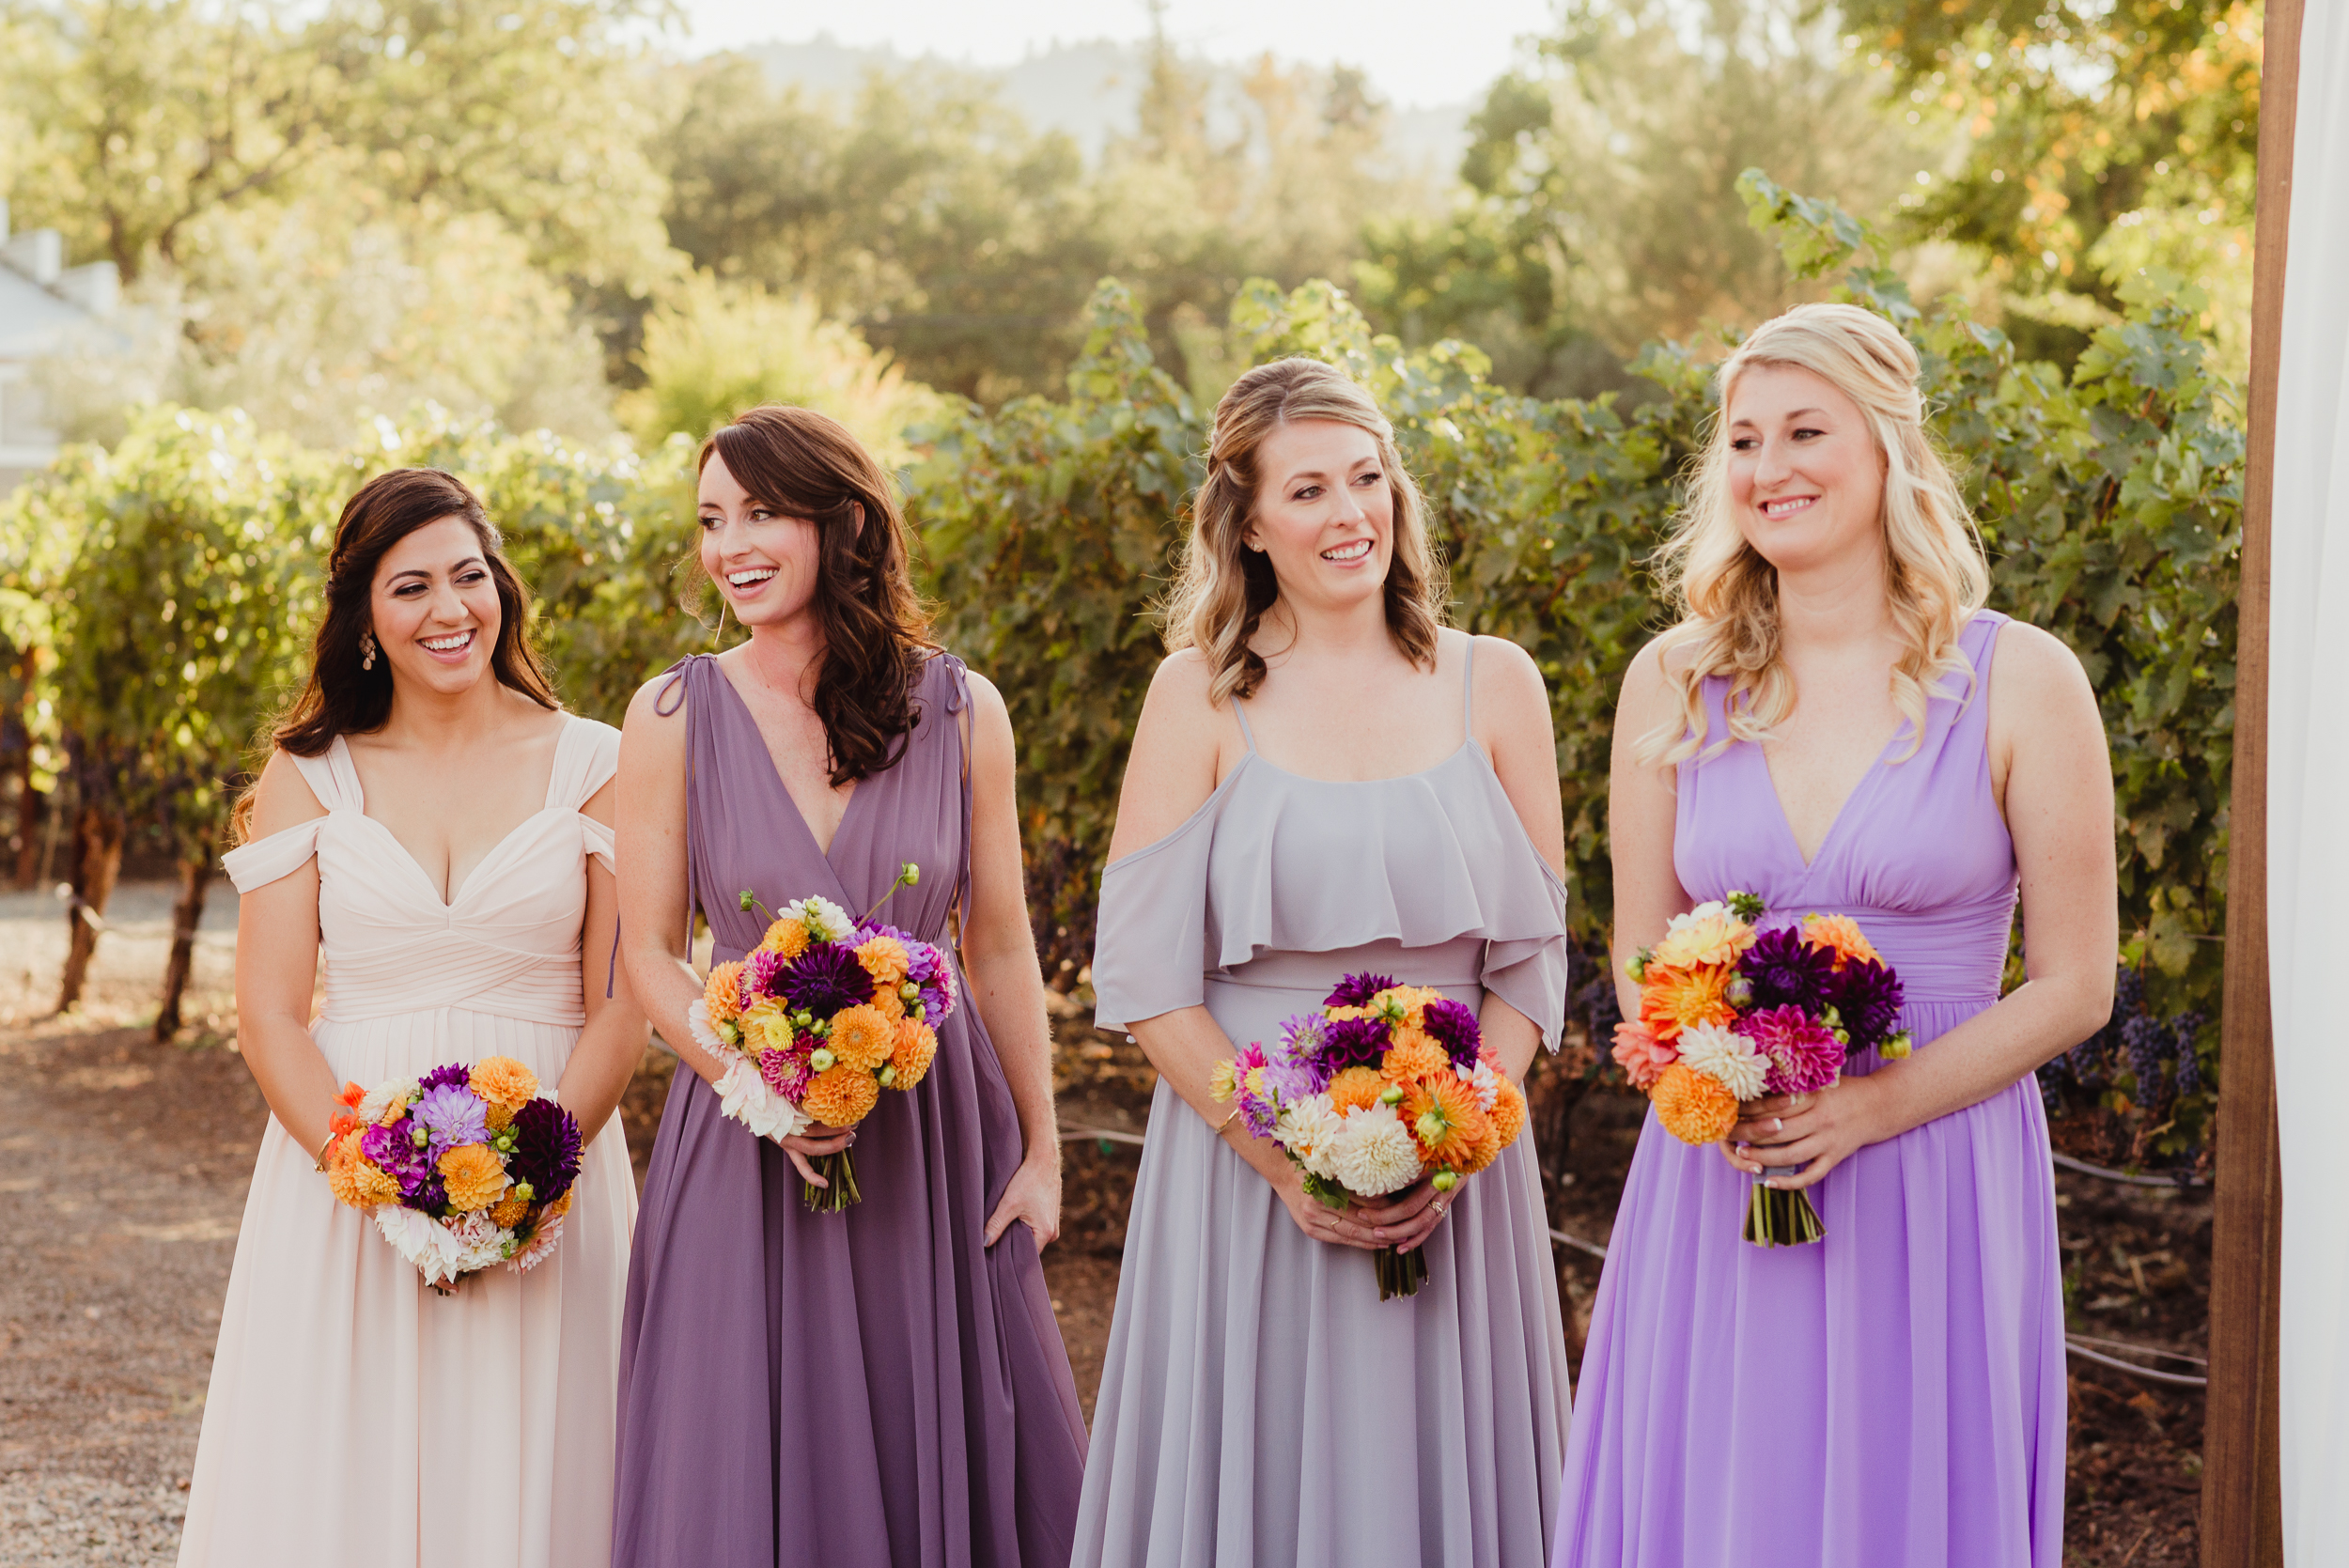 41-wine-country-calistoga-wedding-vivianchen-260.jpg